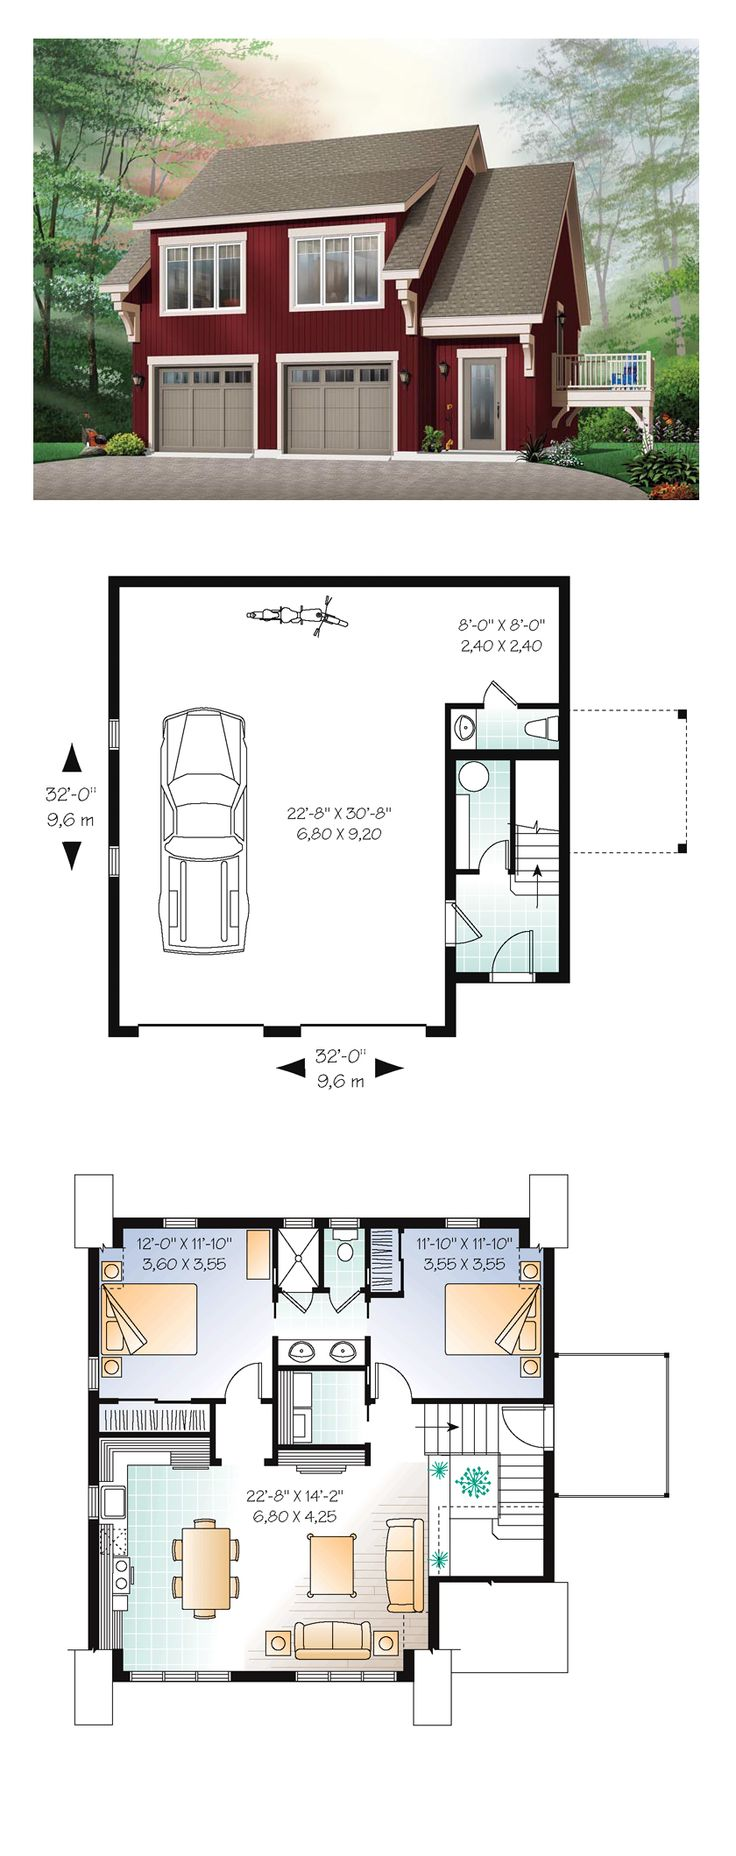 2 bedroom garage apartment floor plans 84 best images about apartments above garages on 26283